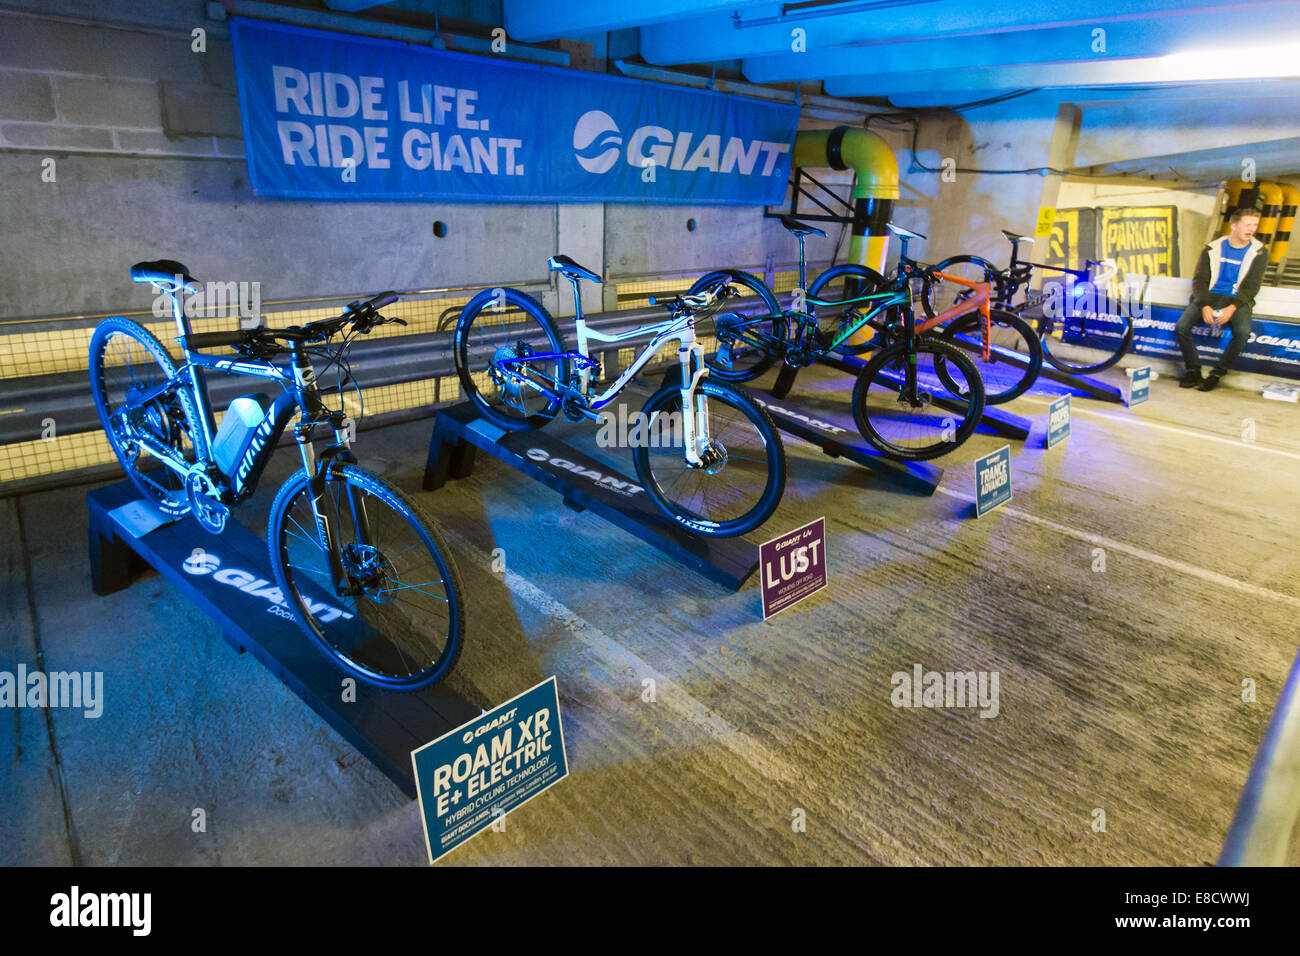 Giant bicycles on display at Parkour Ride a multi-discipline cycling event held in an abandoned multi-storey car - Stock Image